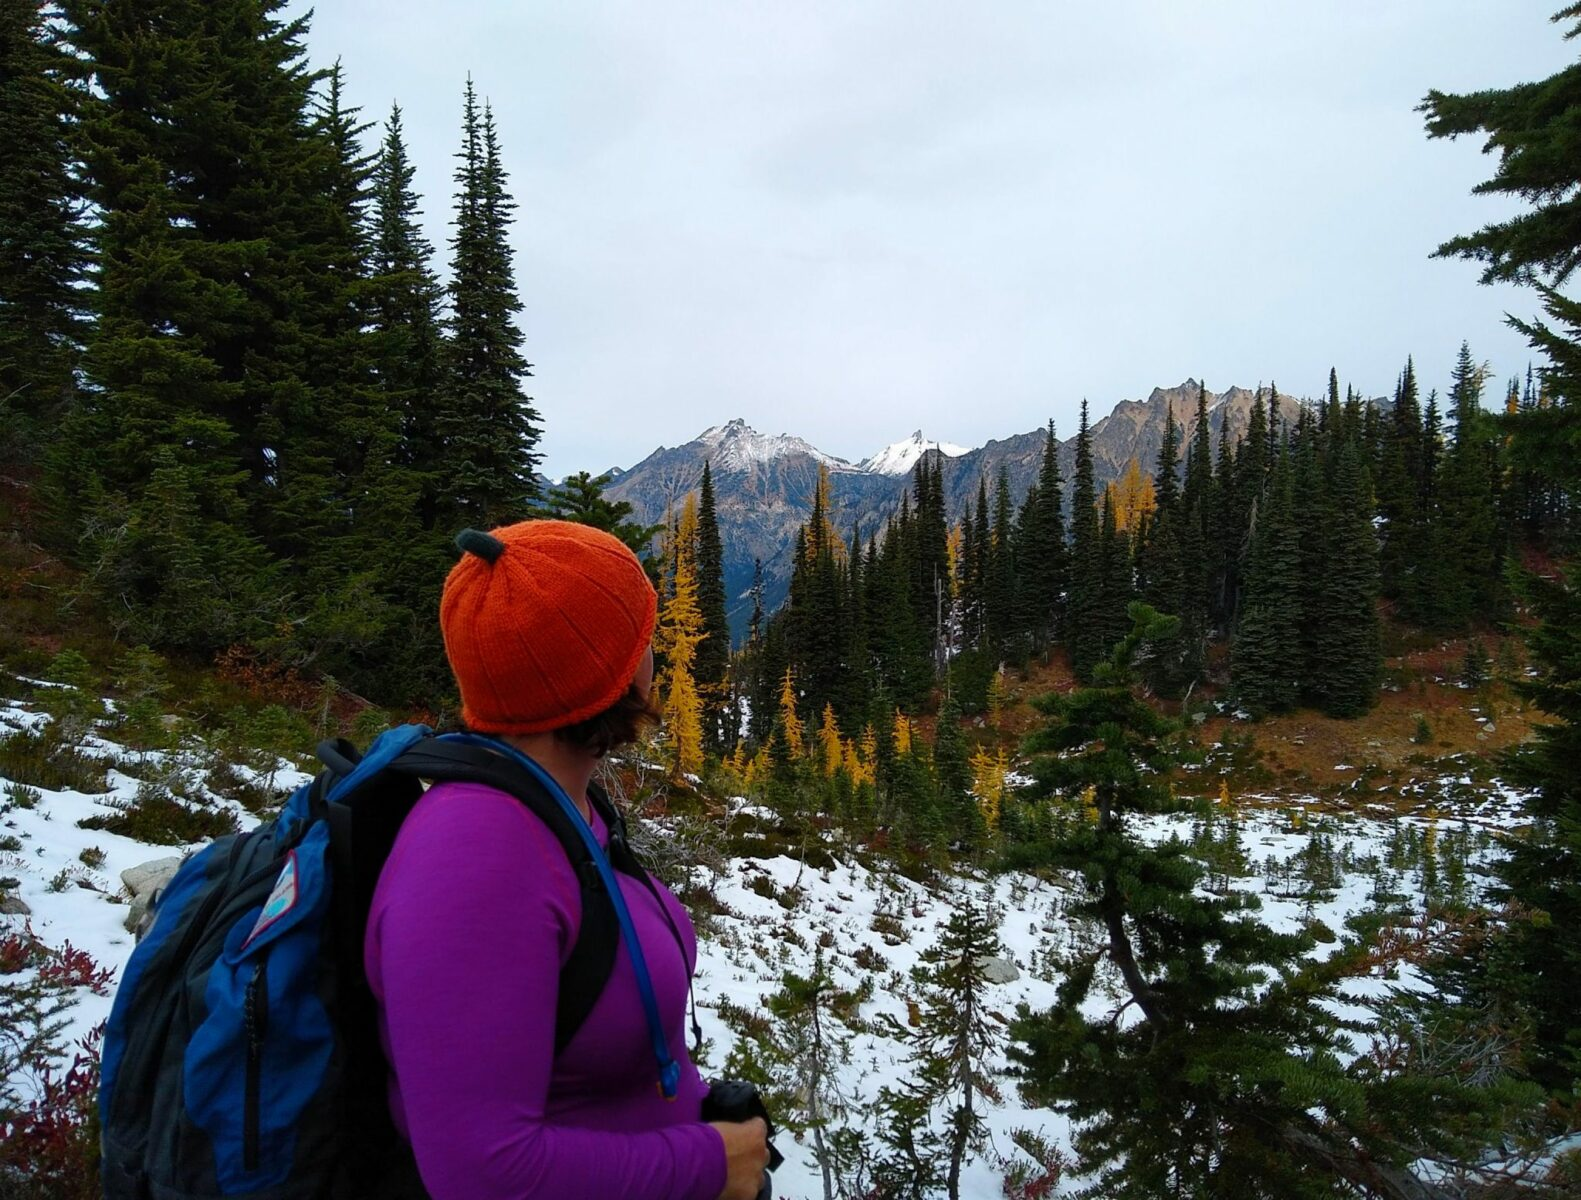 A person in a purple shirt and an orange hat wearing a backpack looks away towards distant forest and mountains. It is an overcast day and there is a bit of snow on the ground. Some of the trees have turned orange in fall color.